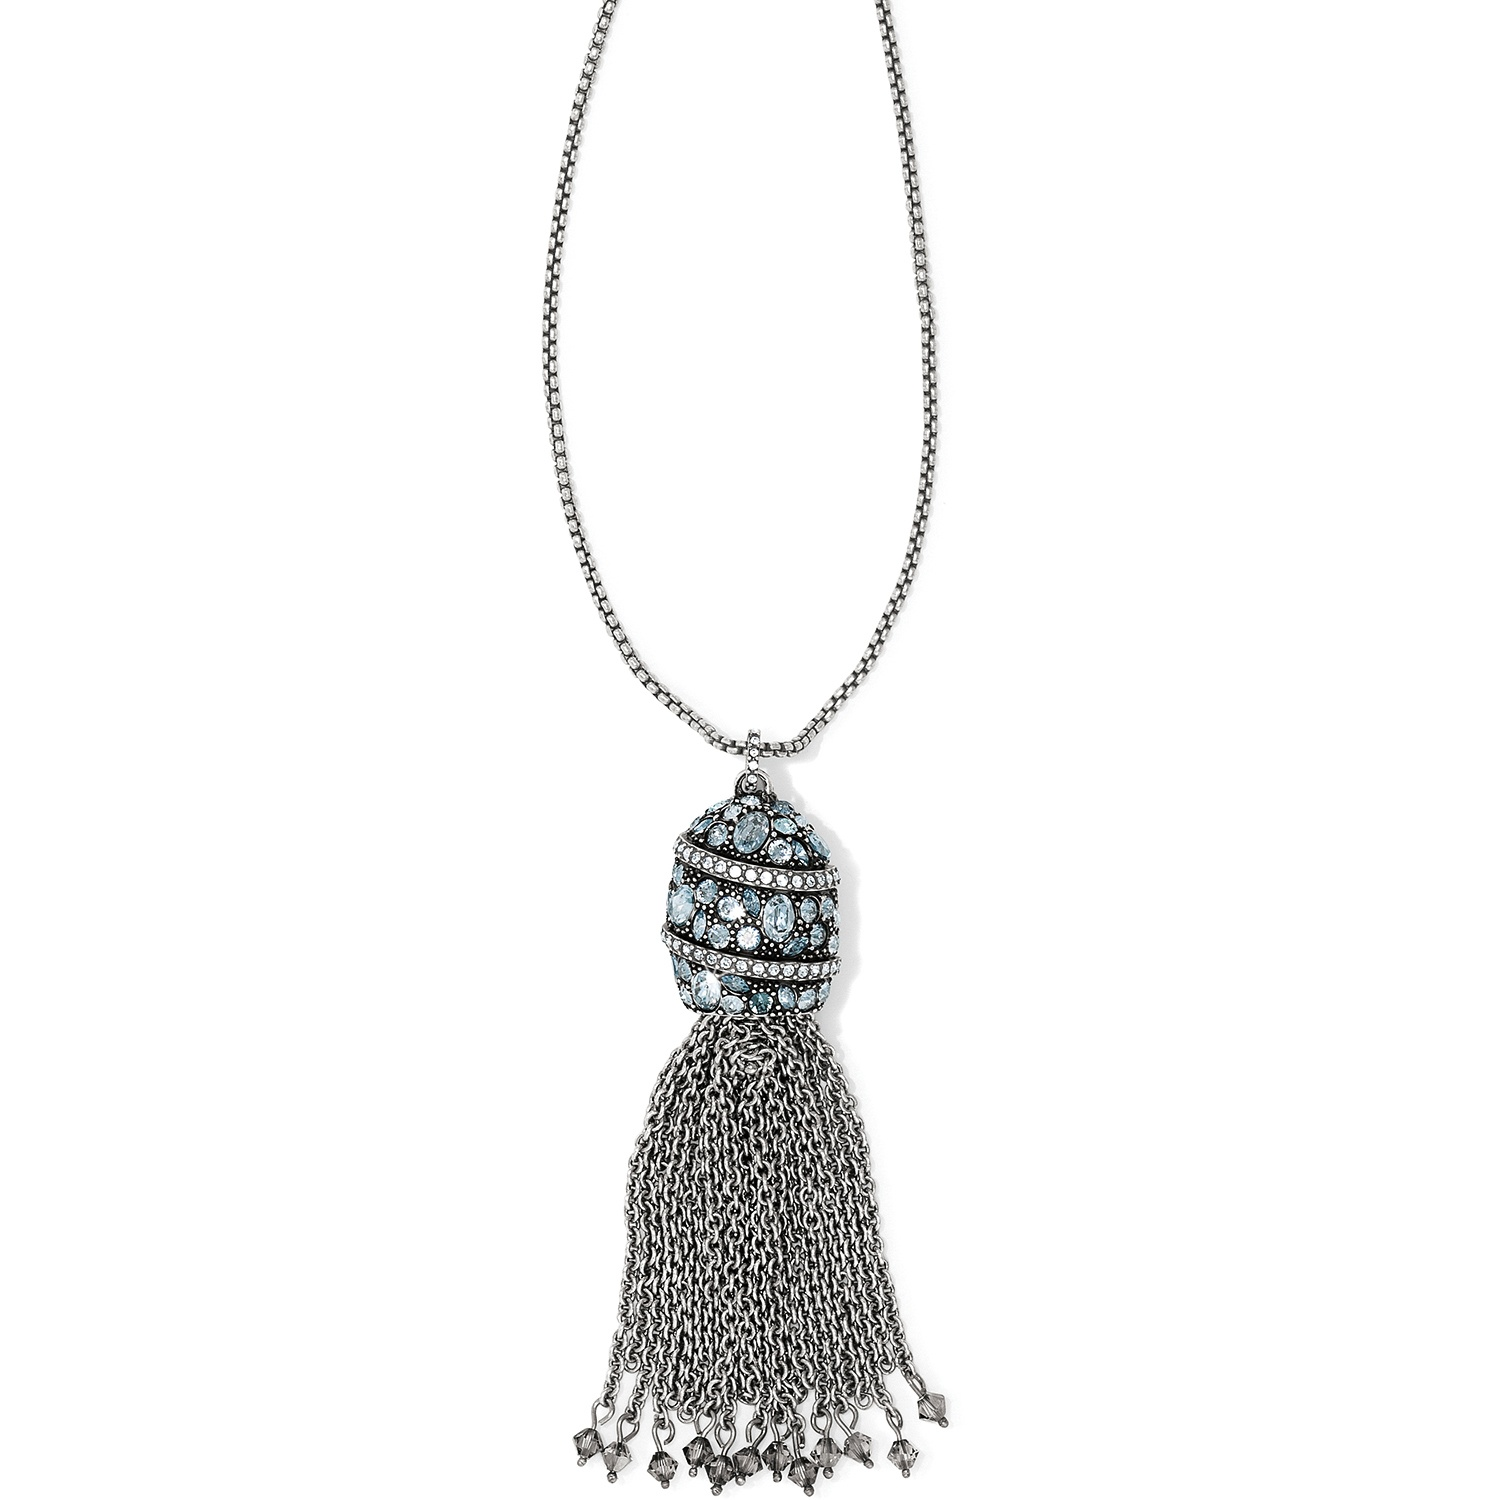 So Icy Jewelry >> Trust Your Journey Trust Your Journey Tassel Convertible Necklace Necklaces